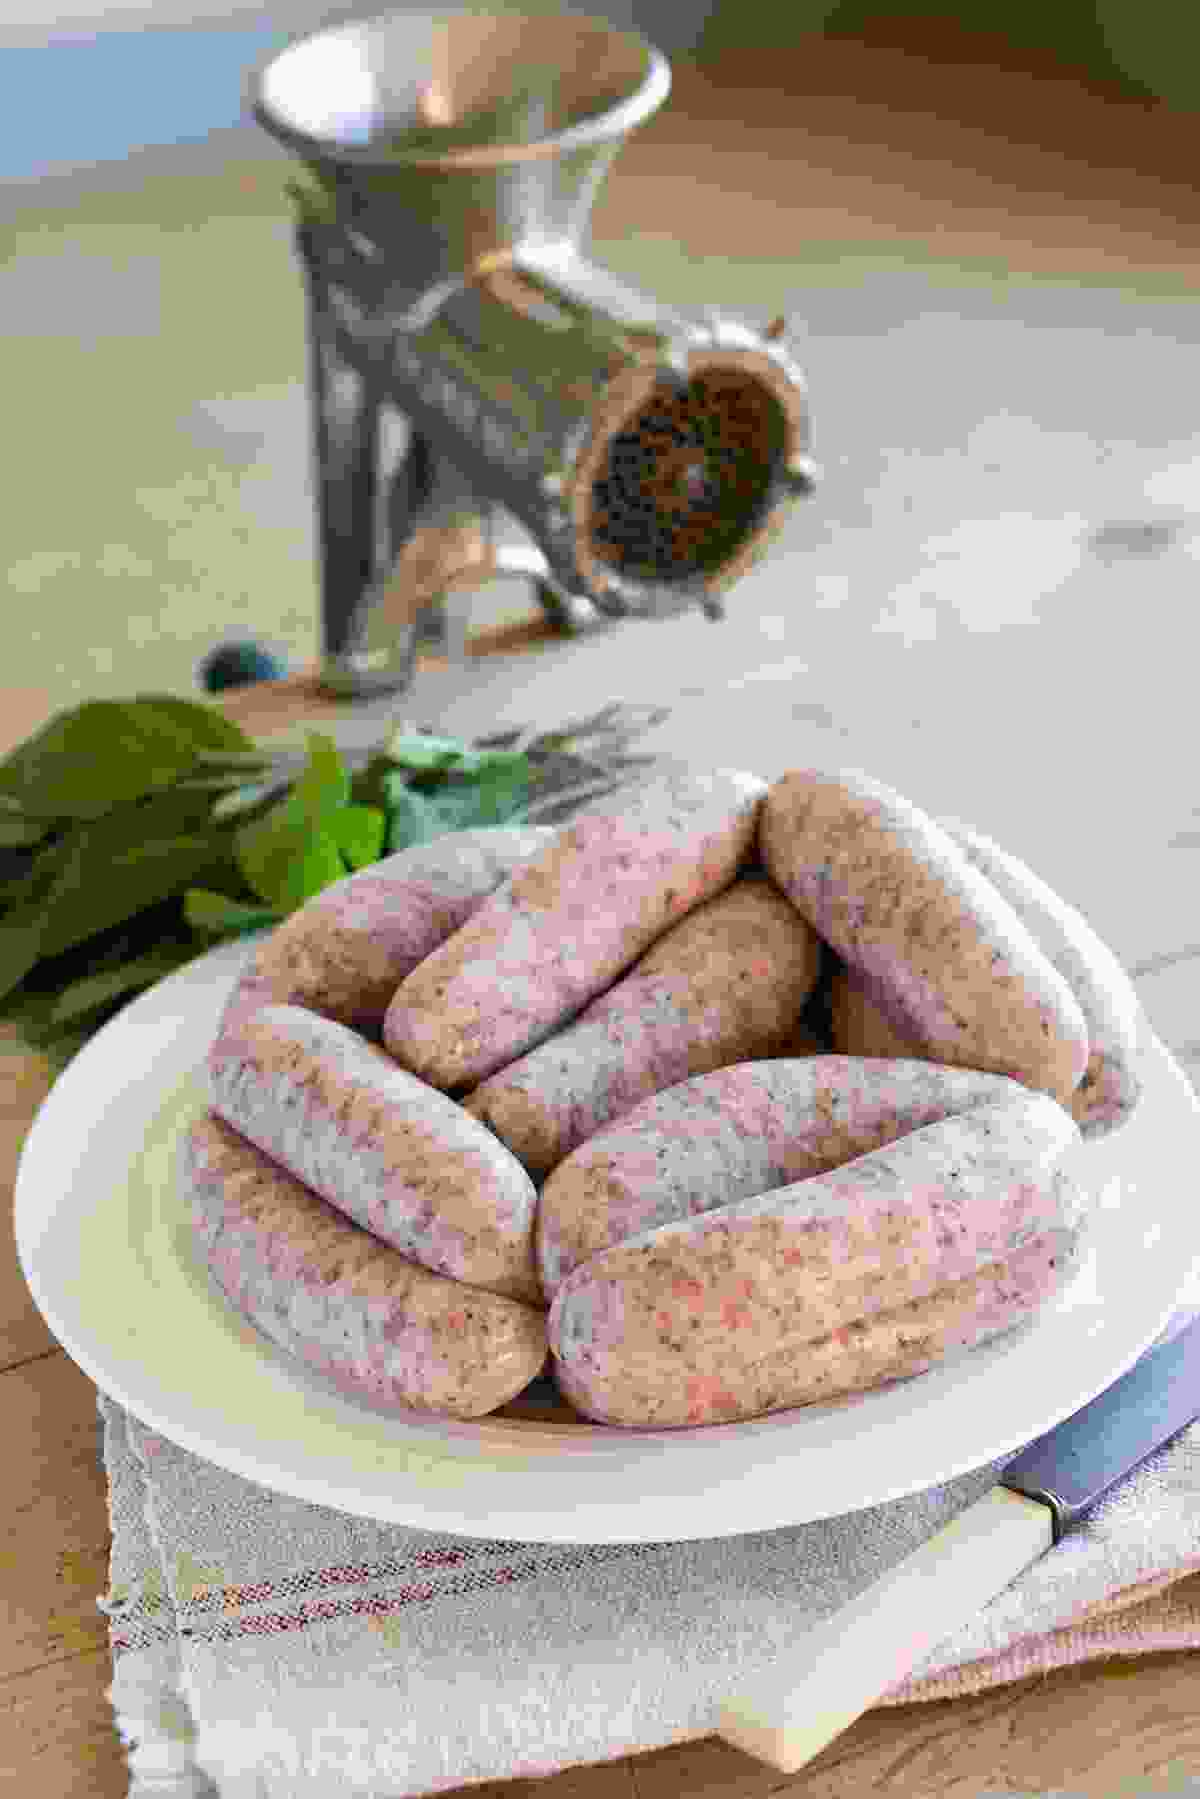 Lincoln sausages (Redhill Farm Free Range Pork)